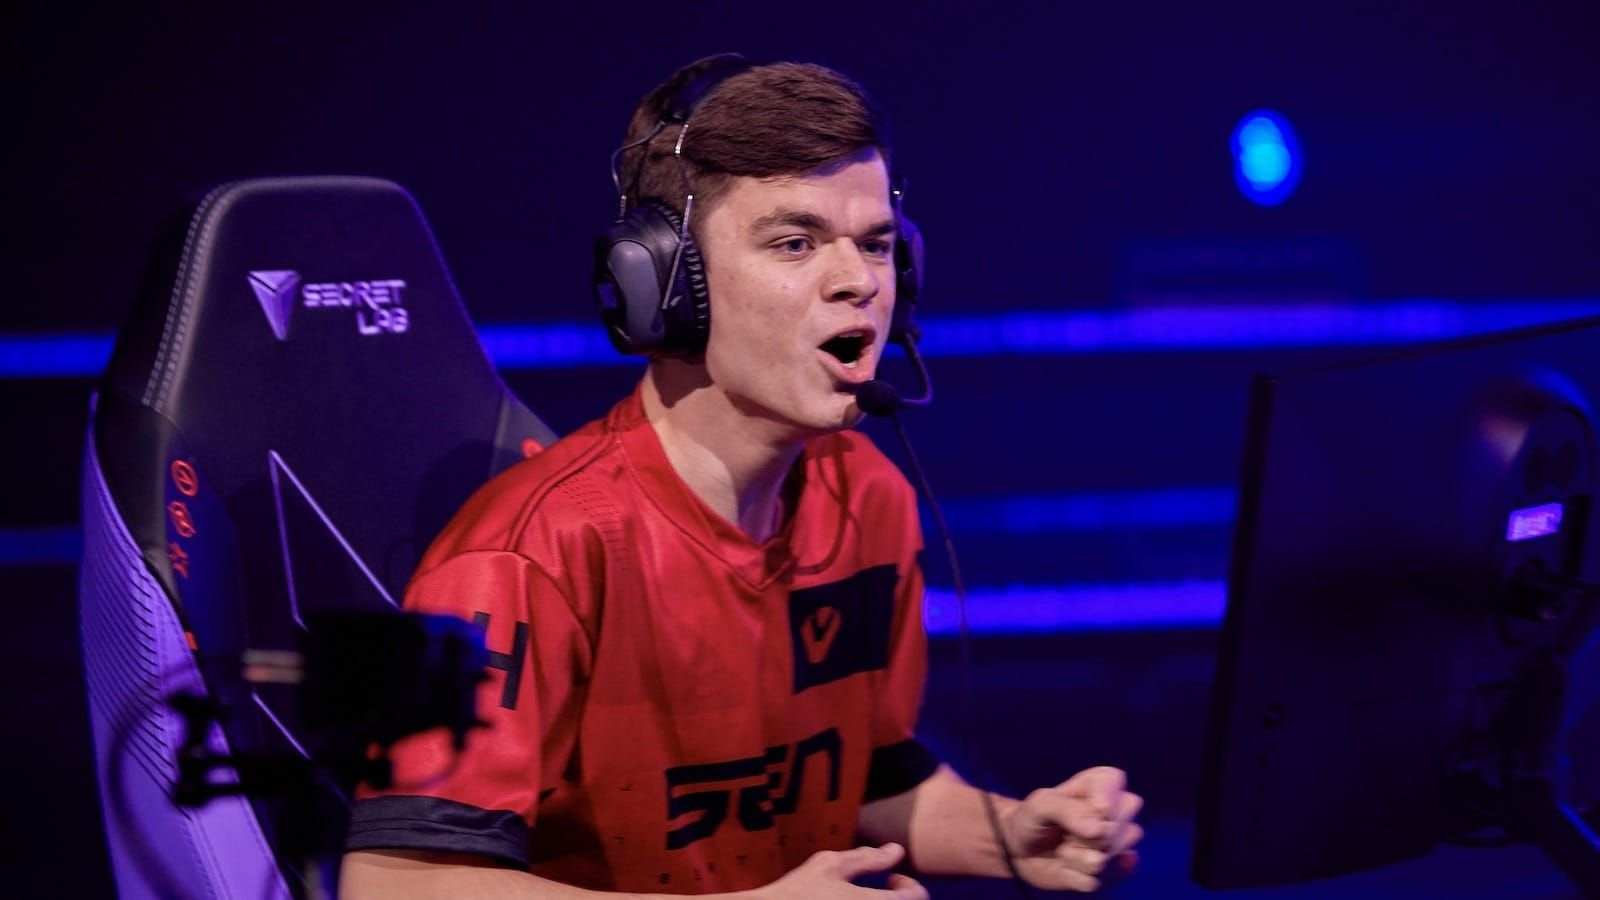 Sentinels Valorant player Sick reacts excitedly to a play